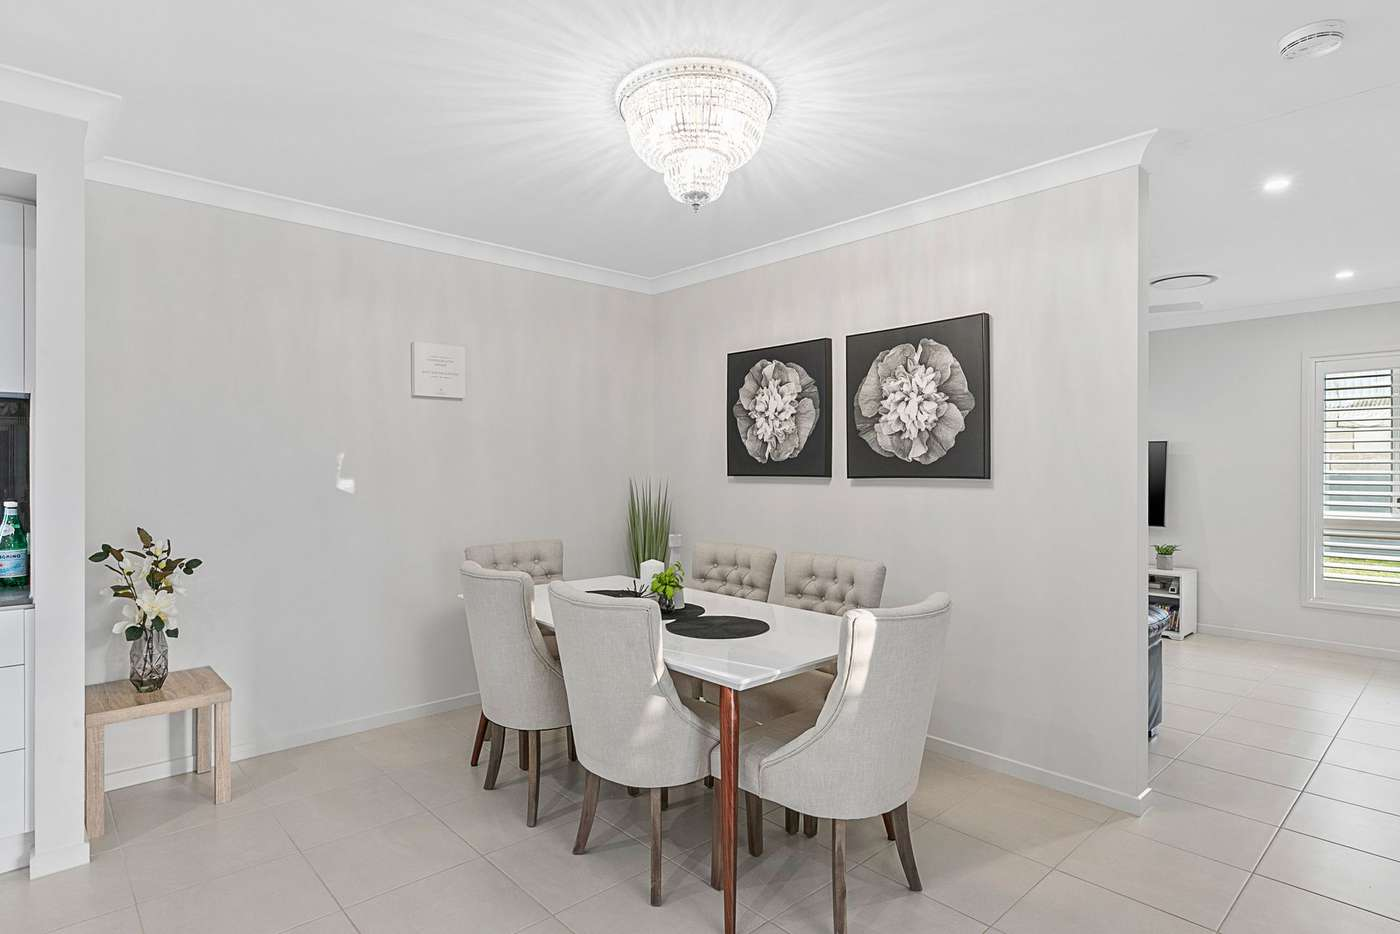 Sixth view of Homely house listing, 11 Seaside Close, Thorneside QLD 4158